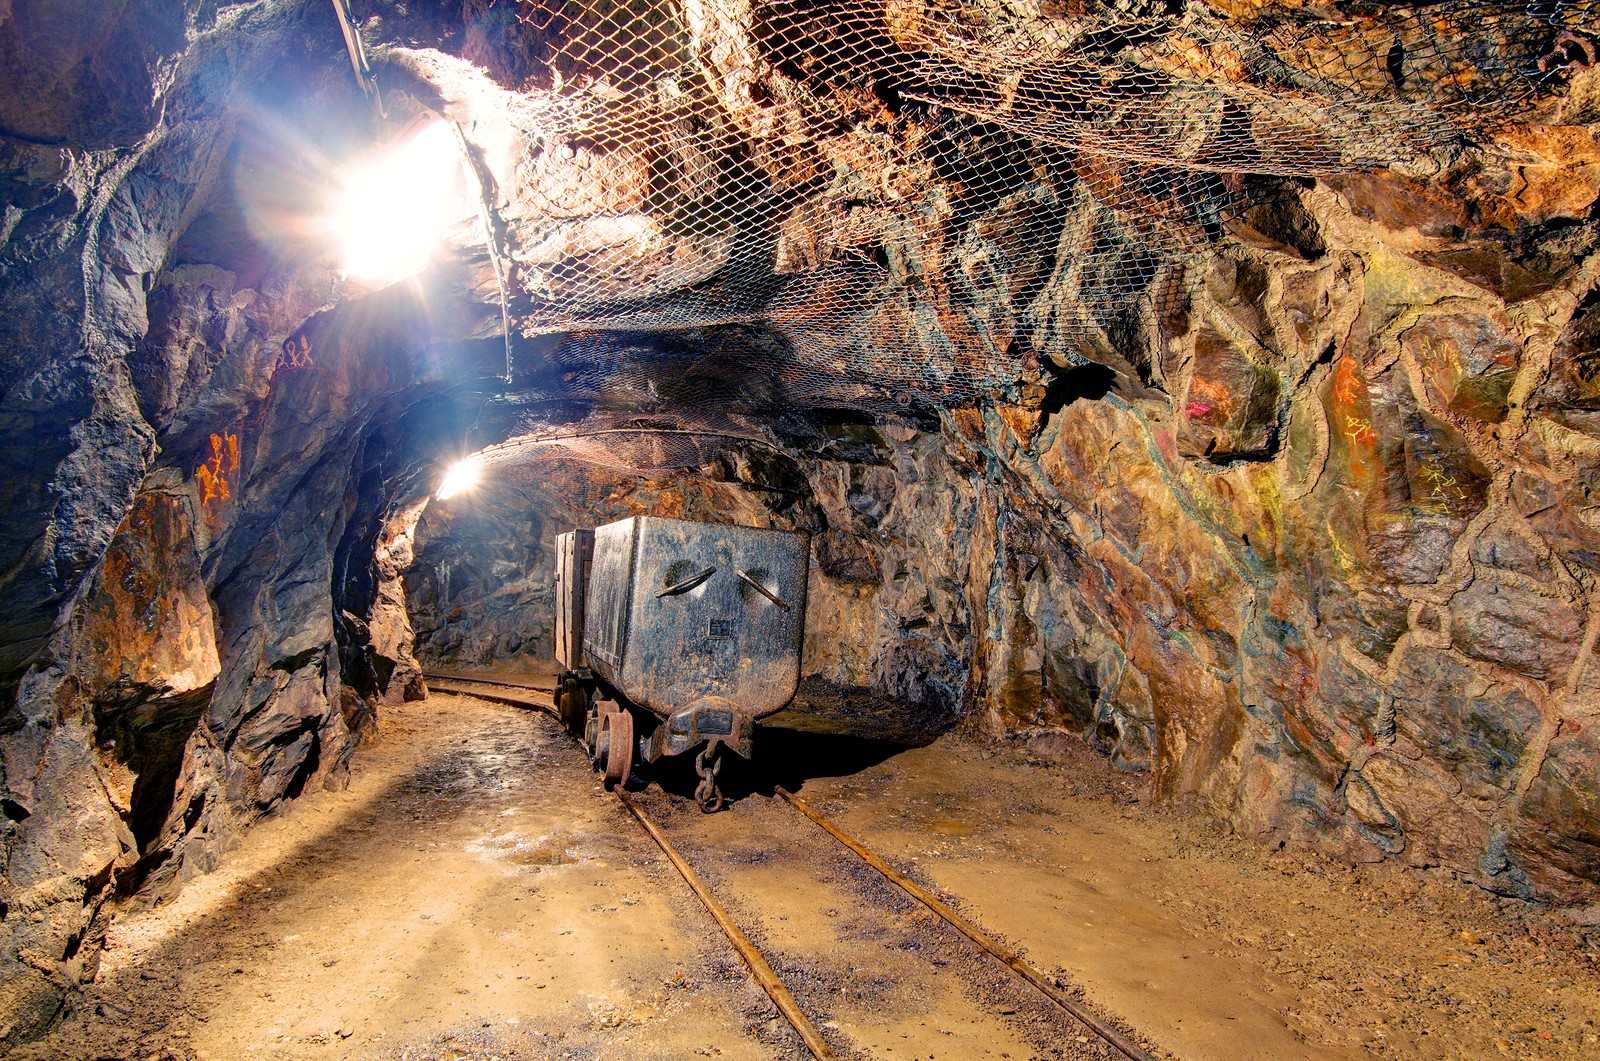 This is a mine.